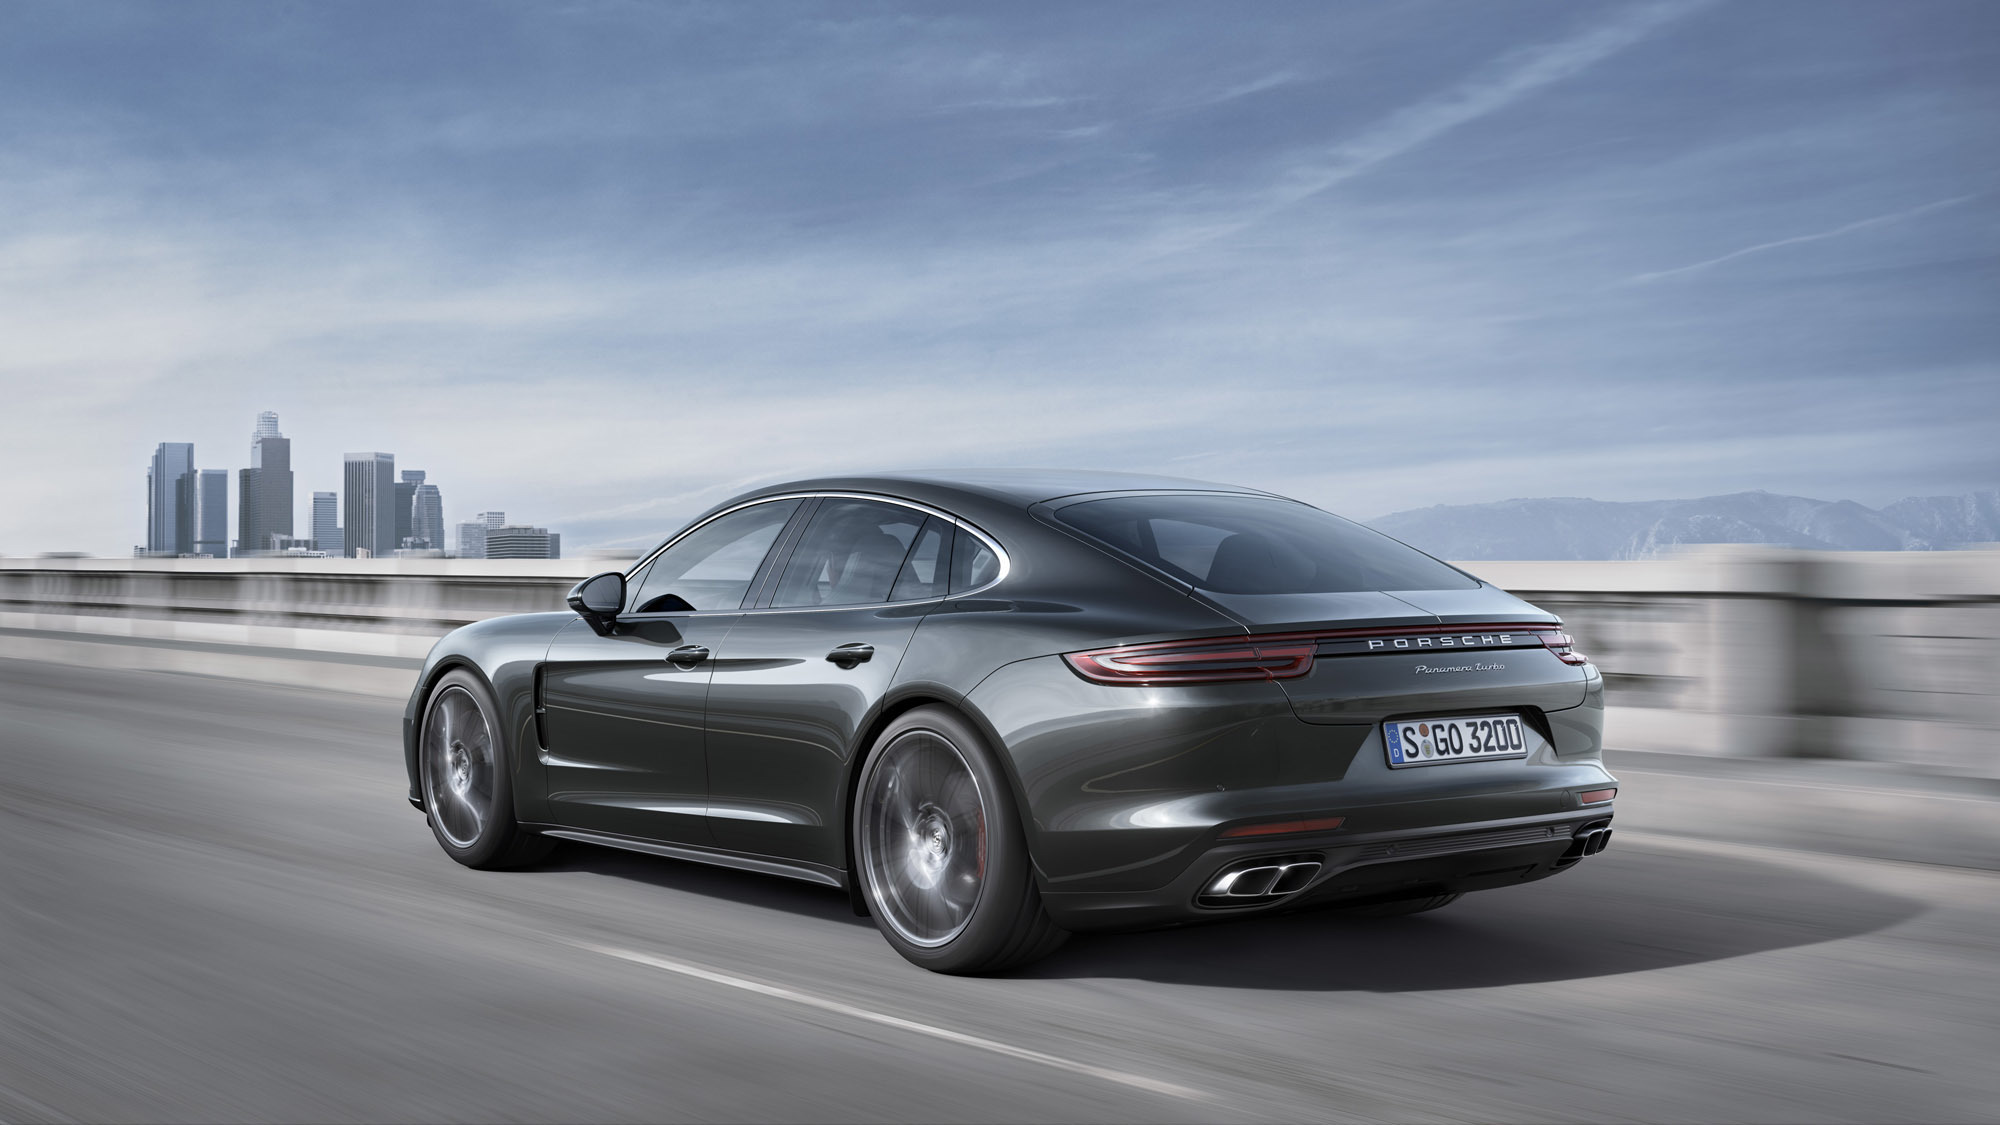 porsche panamera 2016 wallpapers images photos pictures backgrounds. Black Bedroom Furniture Sets. Home Design Ideas